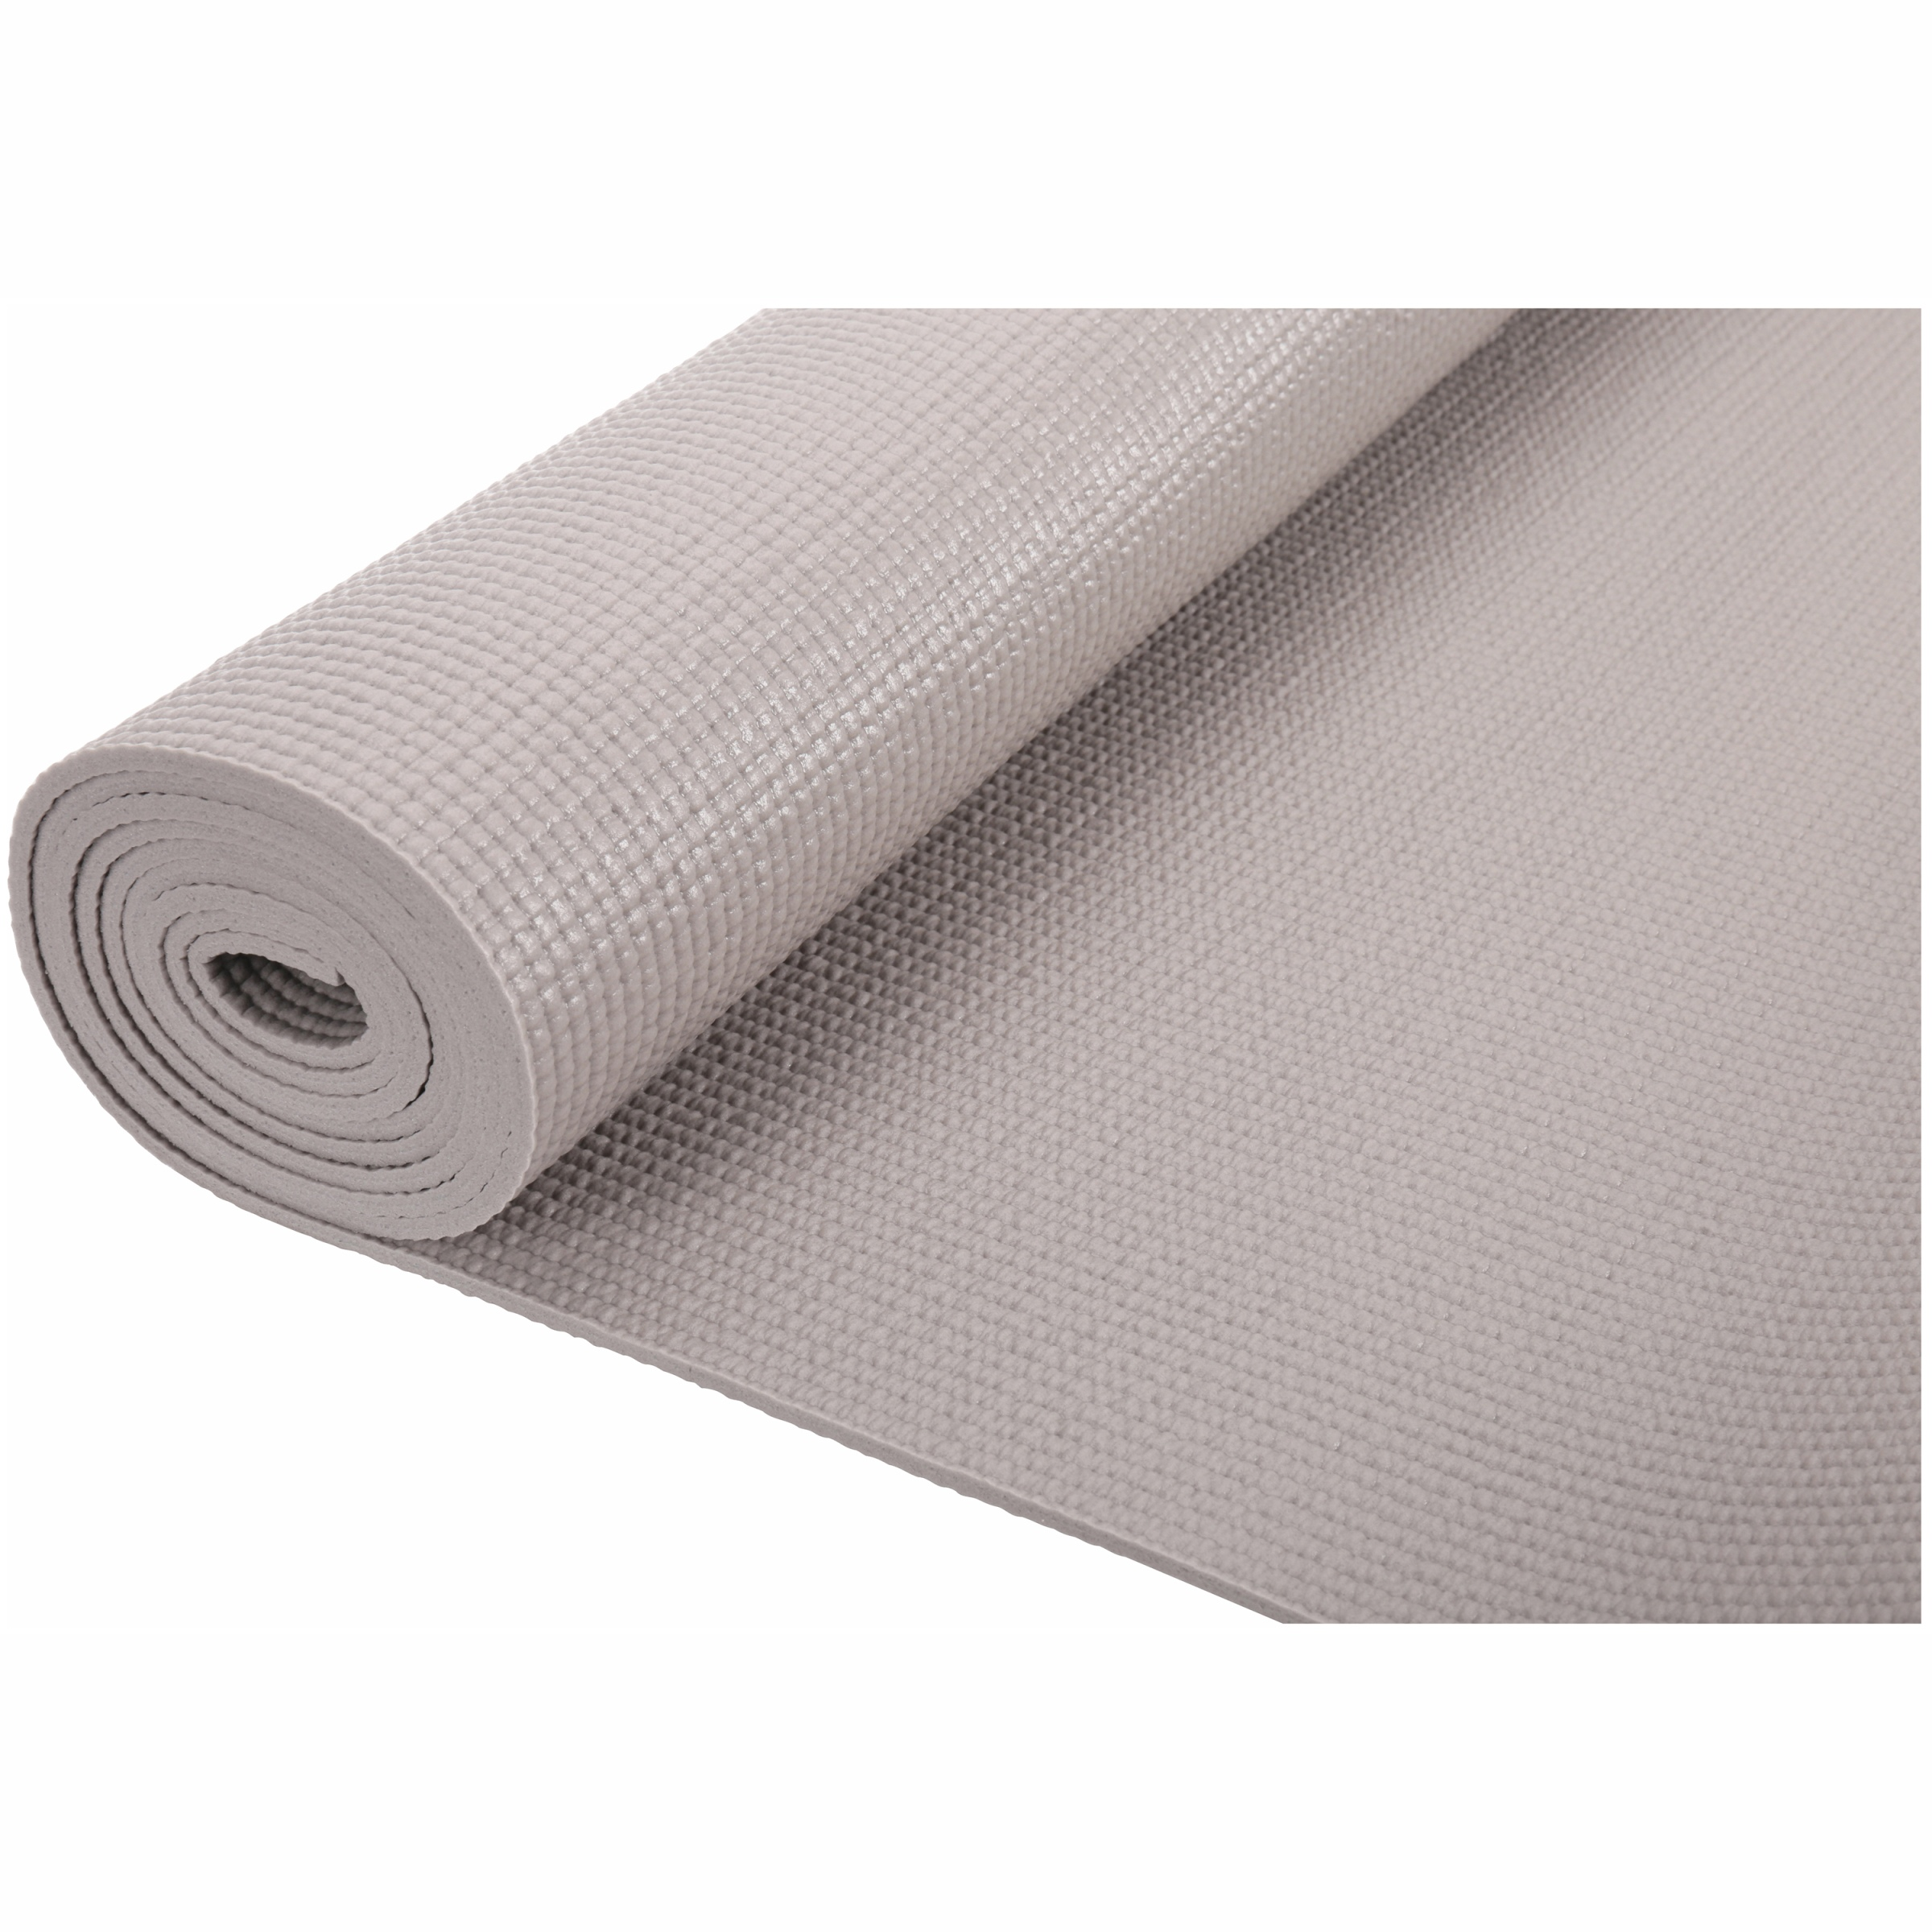 top-rated cheap so cheap new york Athletic Works Yoga Mat, Grey, 3mm